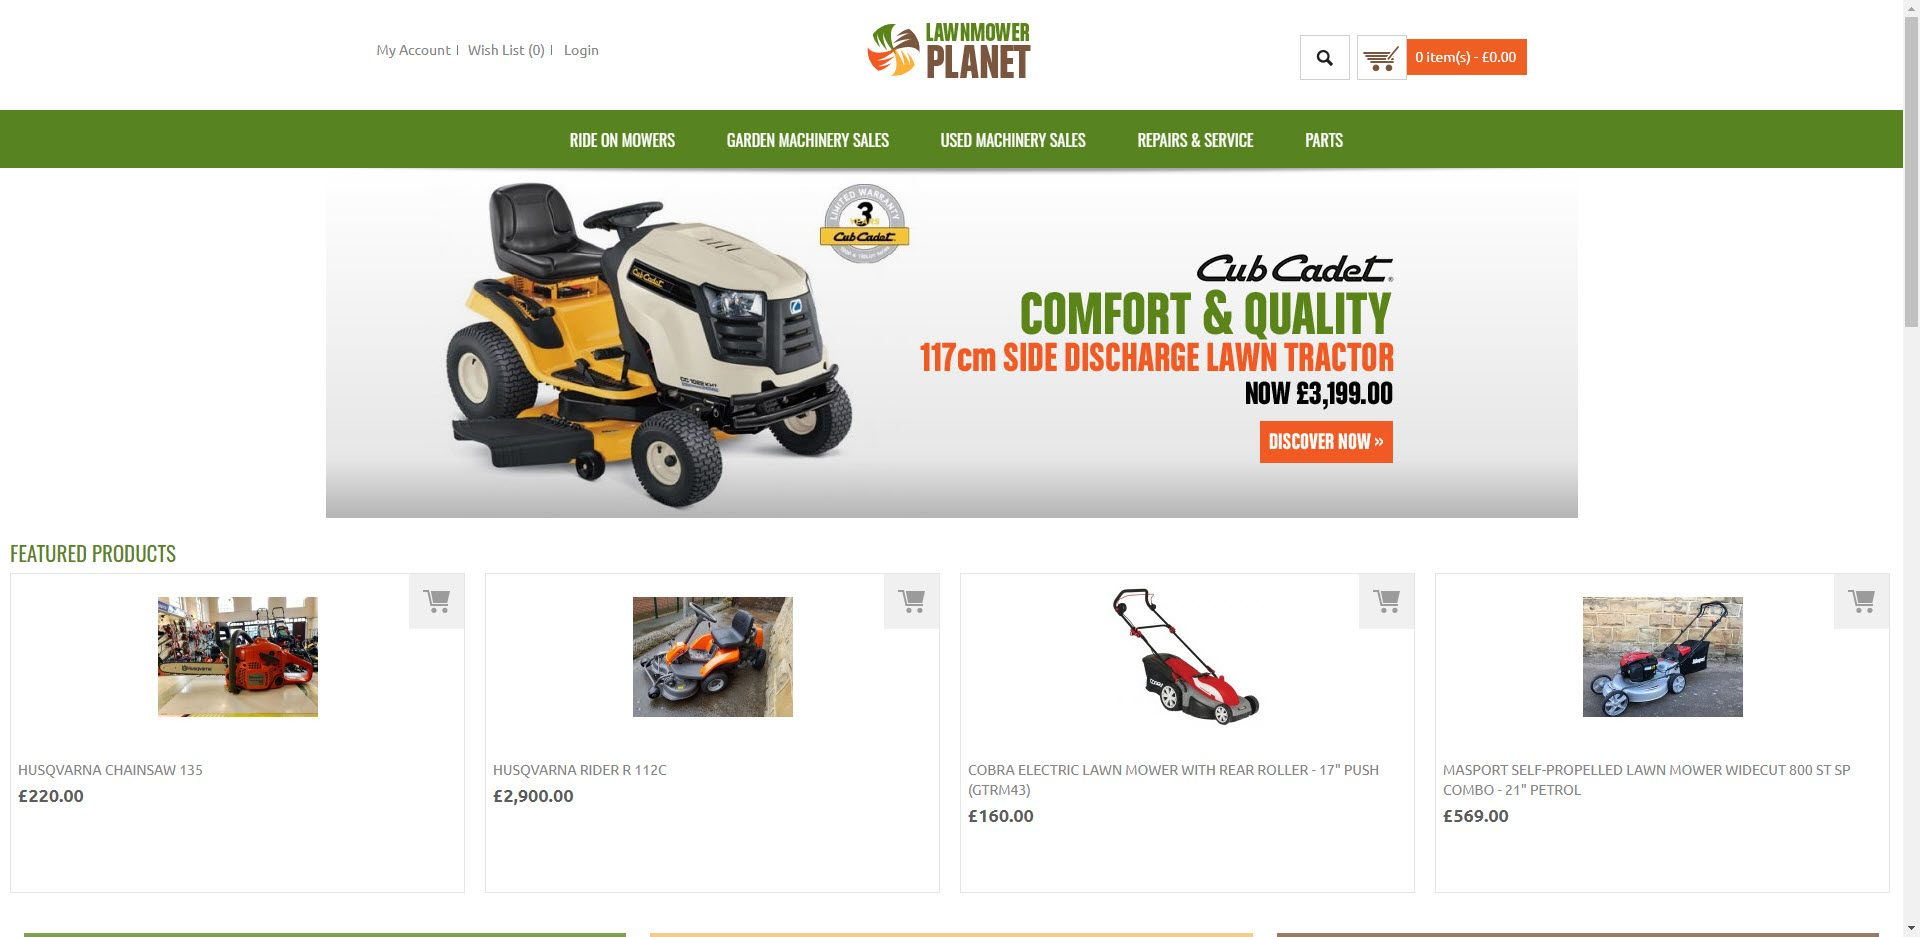 Gardening Affiliate Programs - Lawn Mower Planet Home